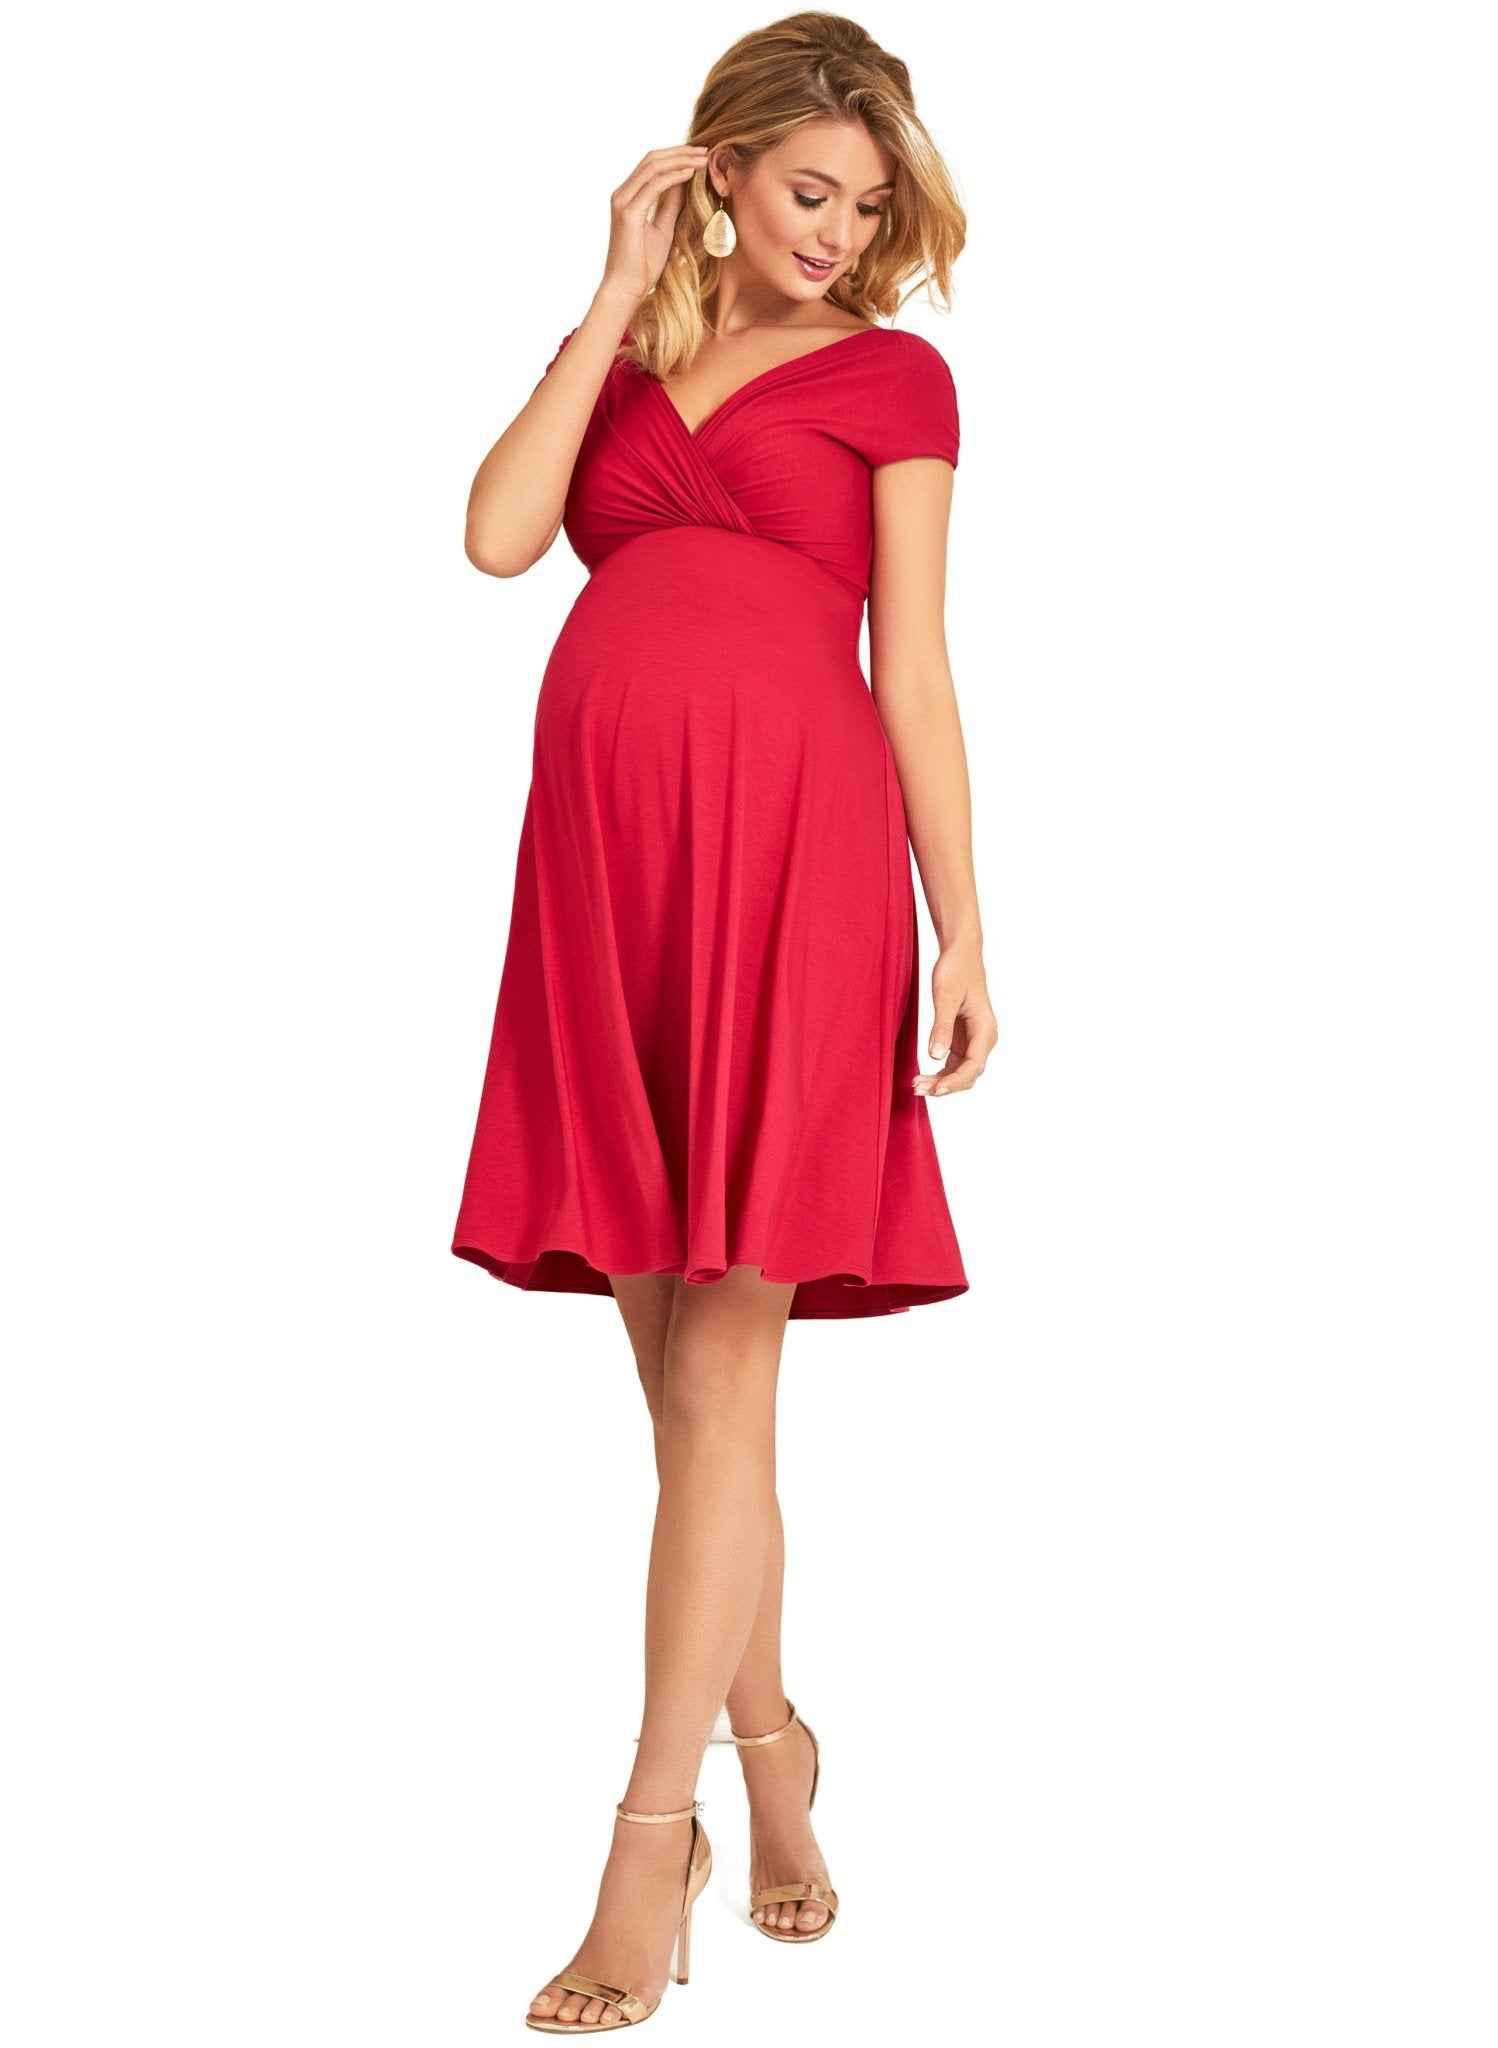 Alessandra Maternity Dress - Bright Rose - Mums and Bumps